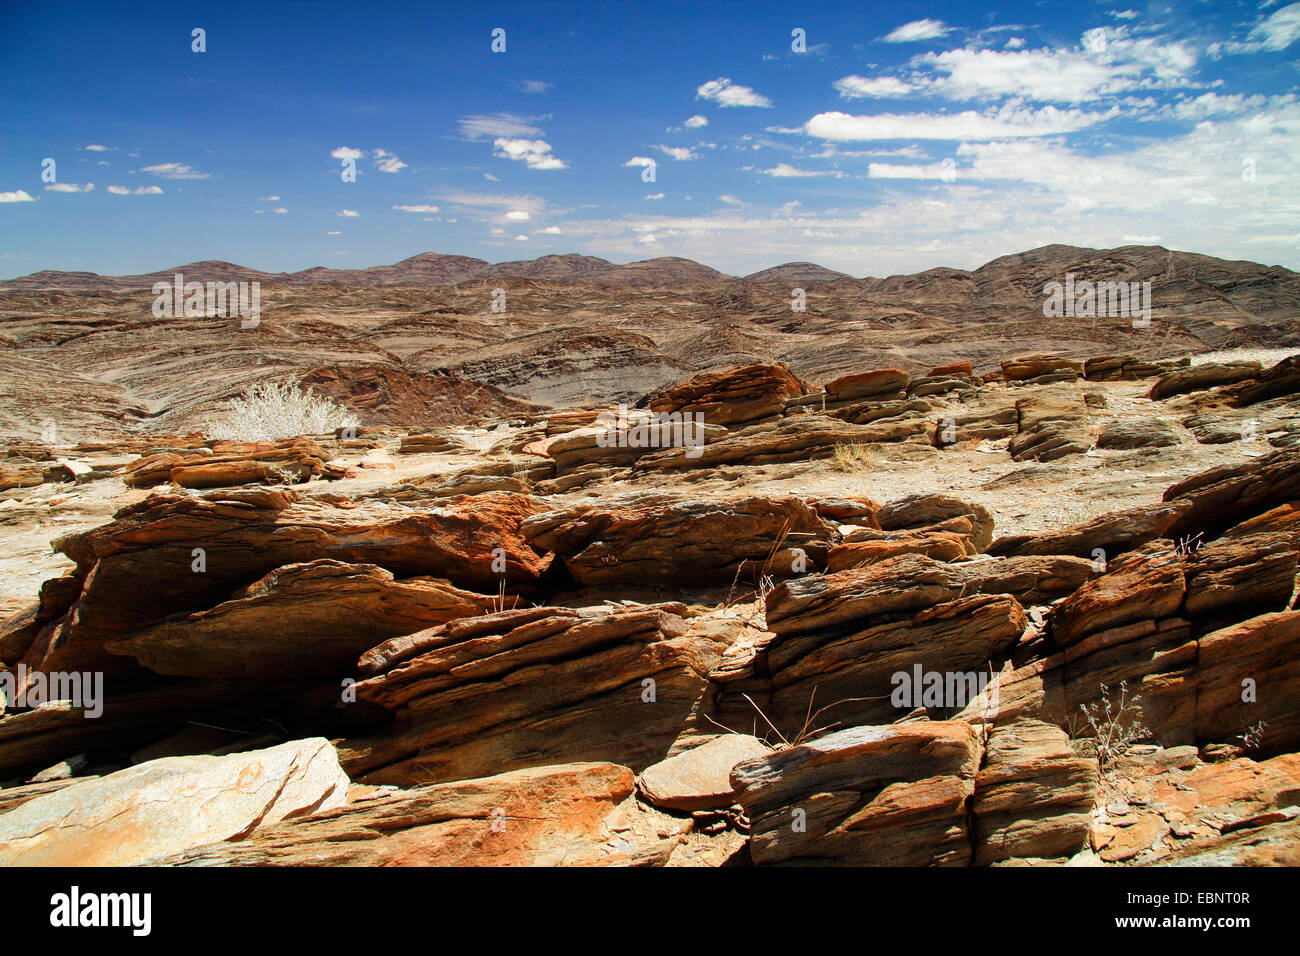 rocky mountain landscape, Namibia, Namib Naukluft National Park, Kuiseb Canyon - Stock Image